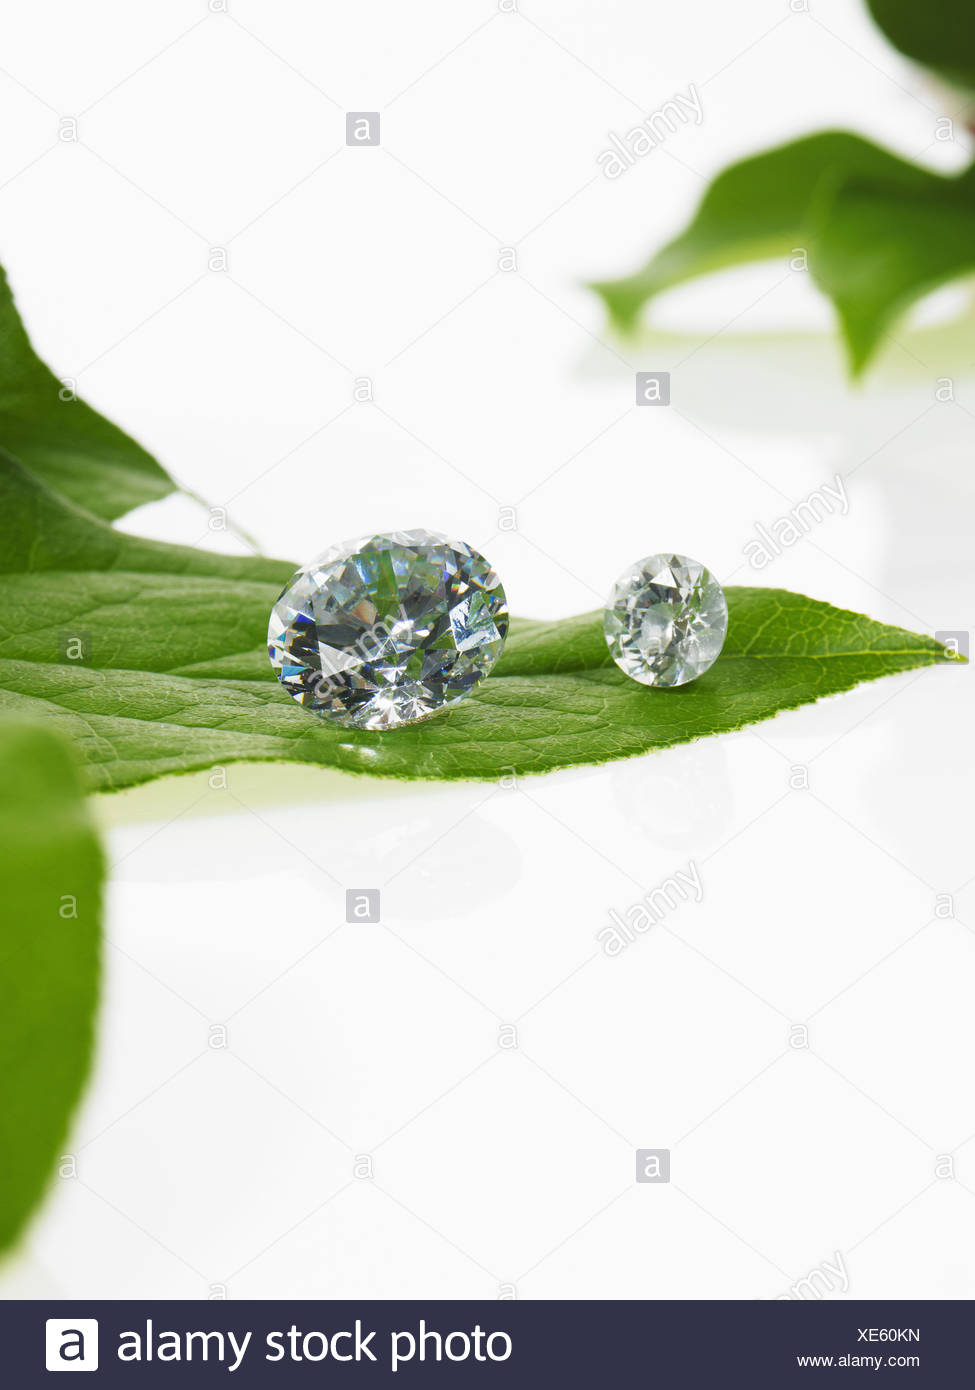 A single leaf with veins, and a small clear glass bead or objects, with facets which reflect light. - Stock Image